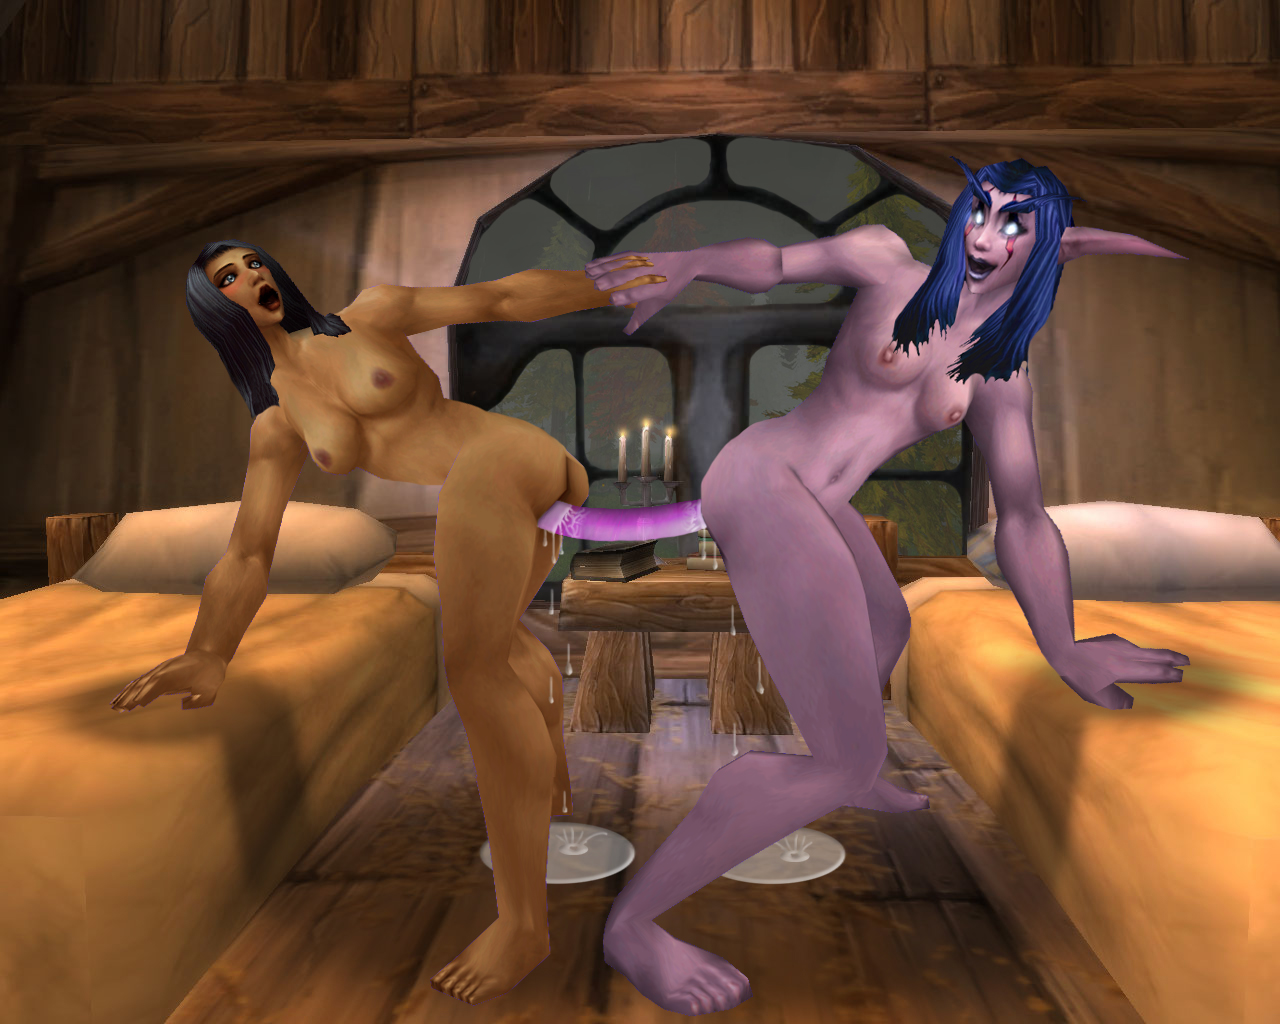 Alexstrasza and the 7 dwarfs porno cartoon scenes